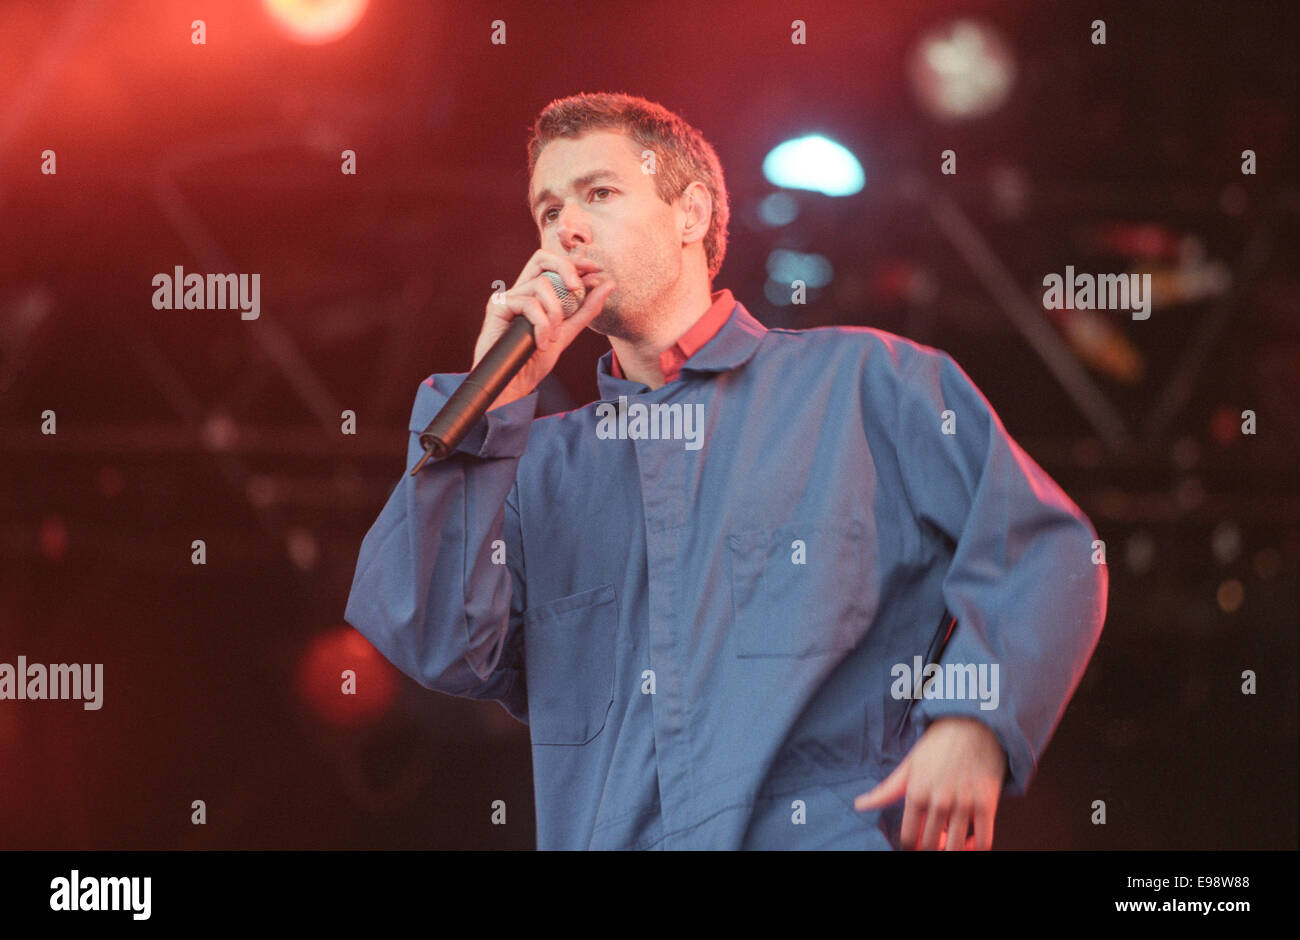 The Beastie Boys on stage in concert at T In The Park music festival, in Scotland, in 1998. Stock Photo